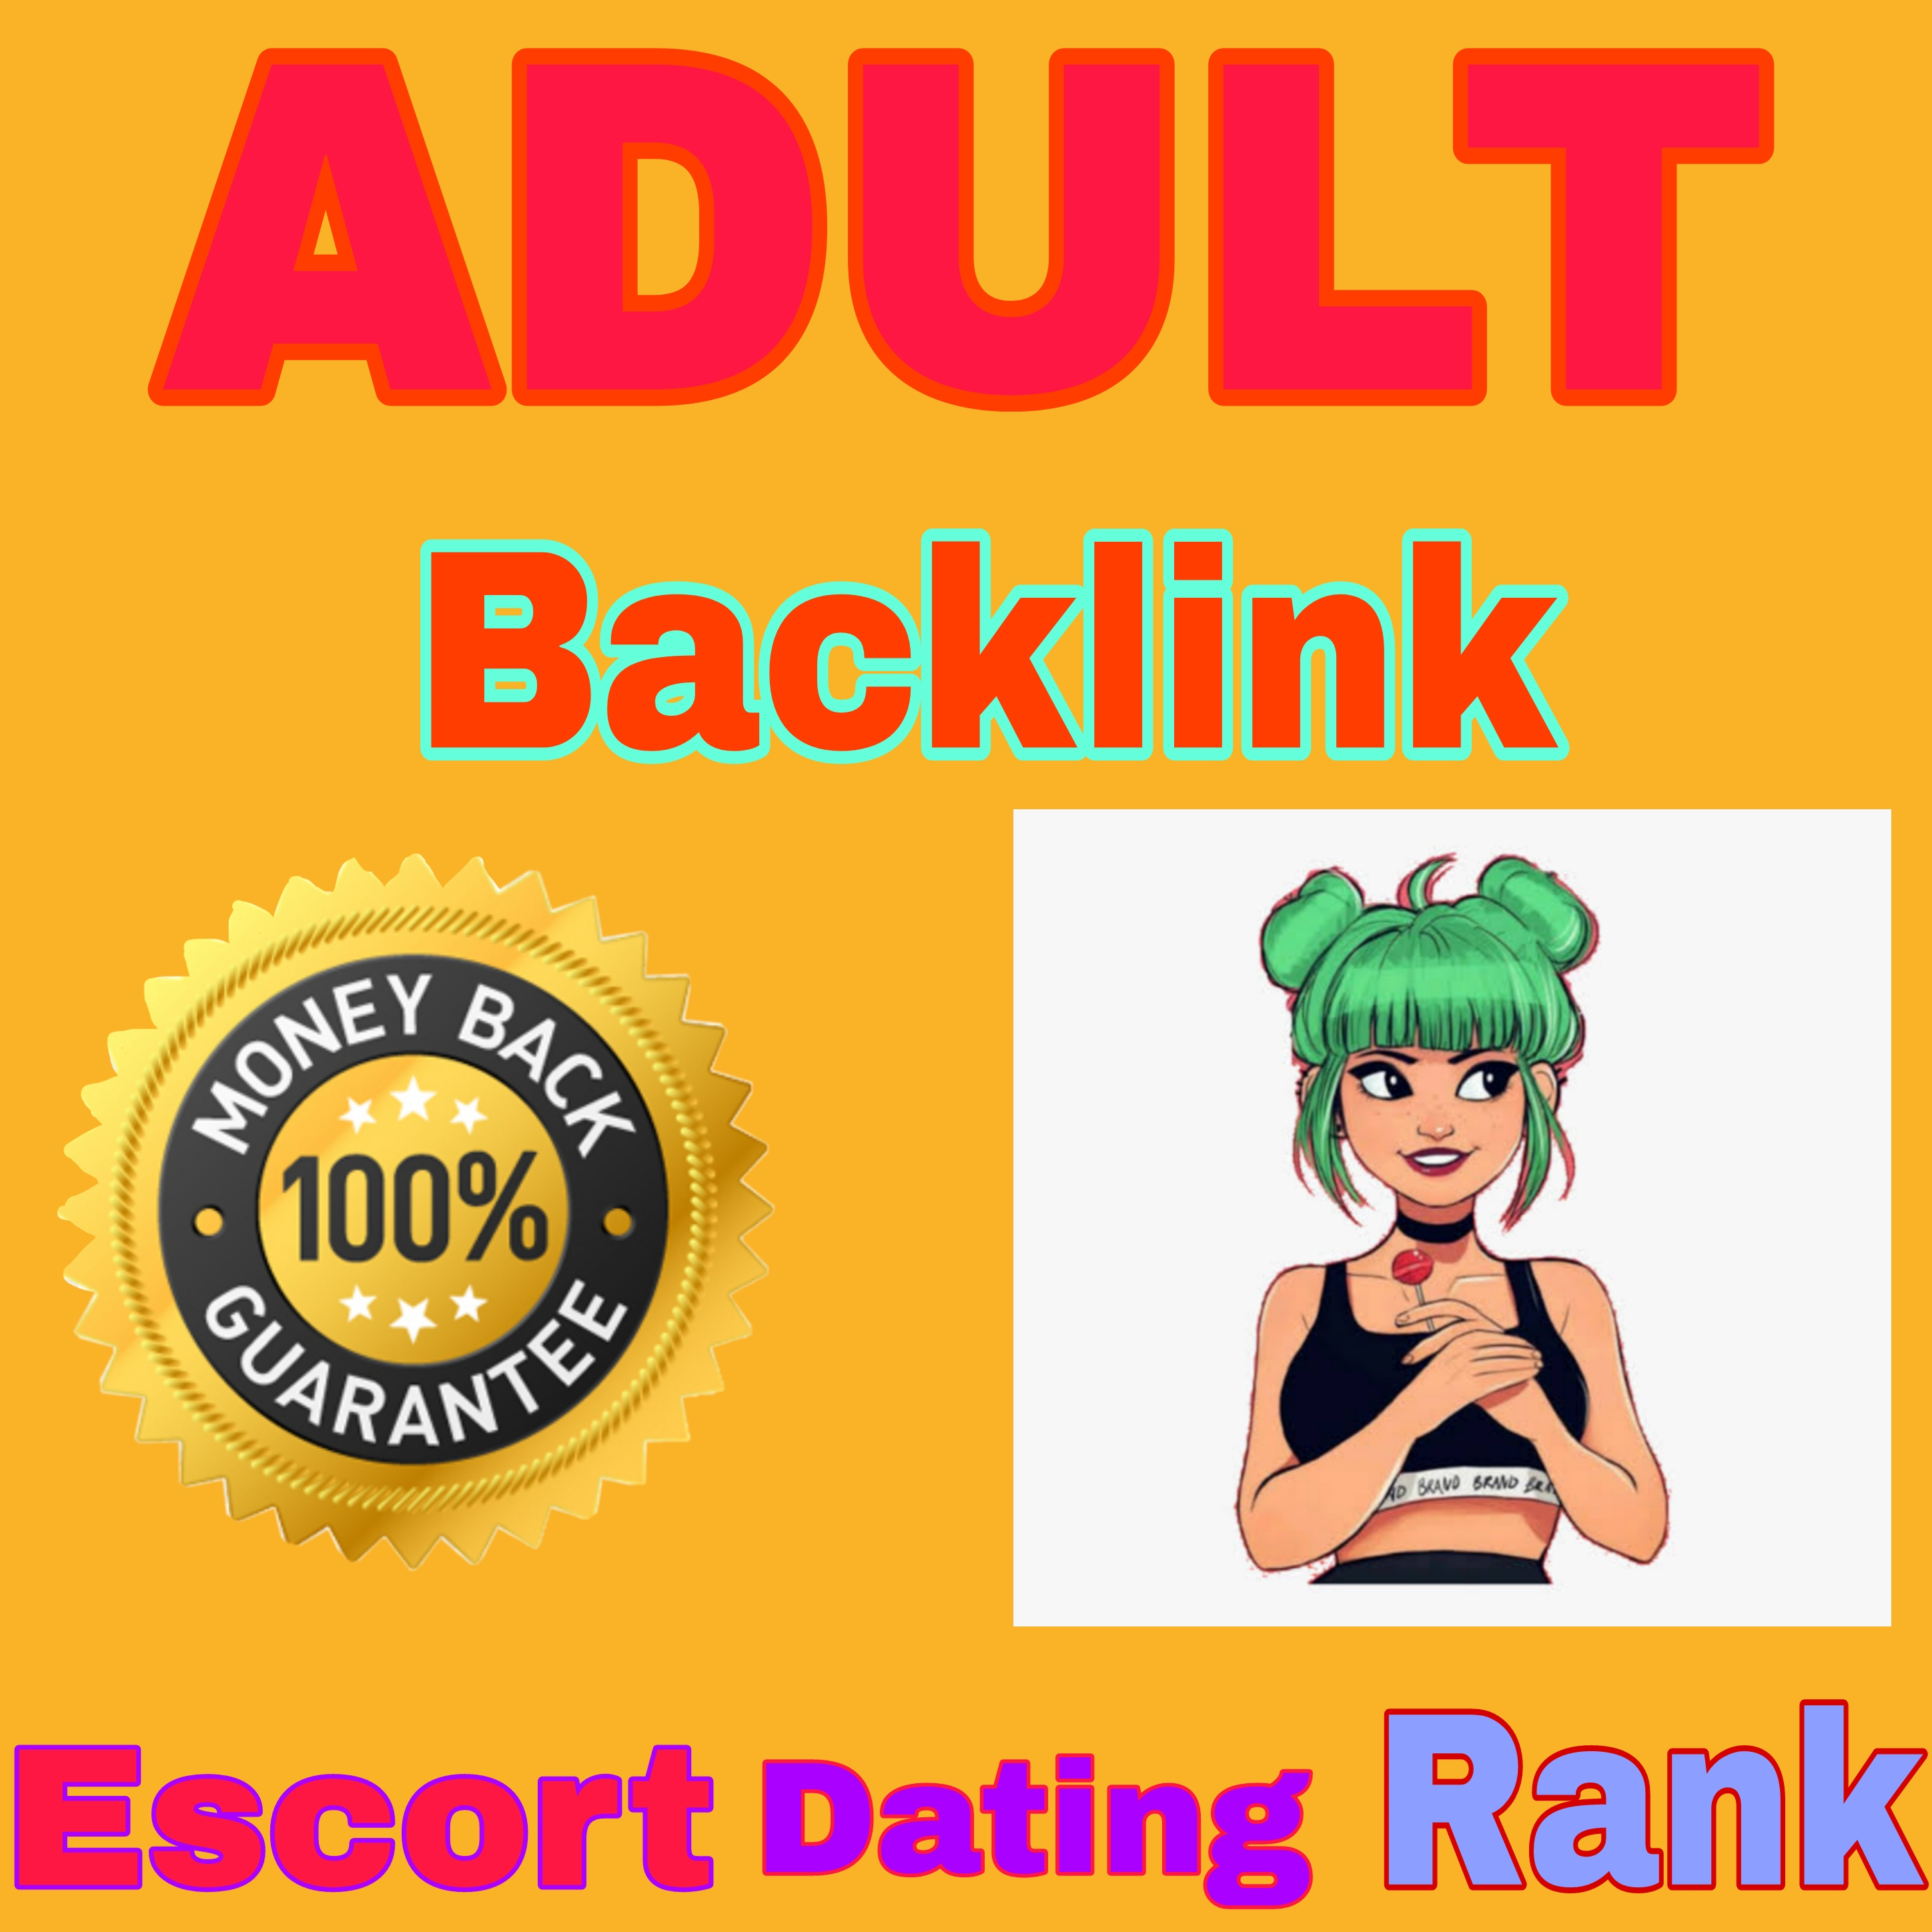 18+ 300+ High Authority Backlinks For Adult site/Escorts/Dating For rank on google